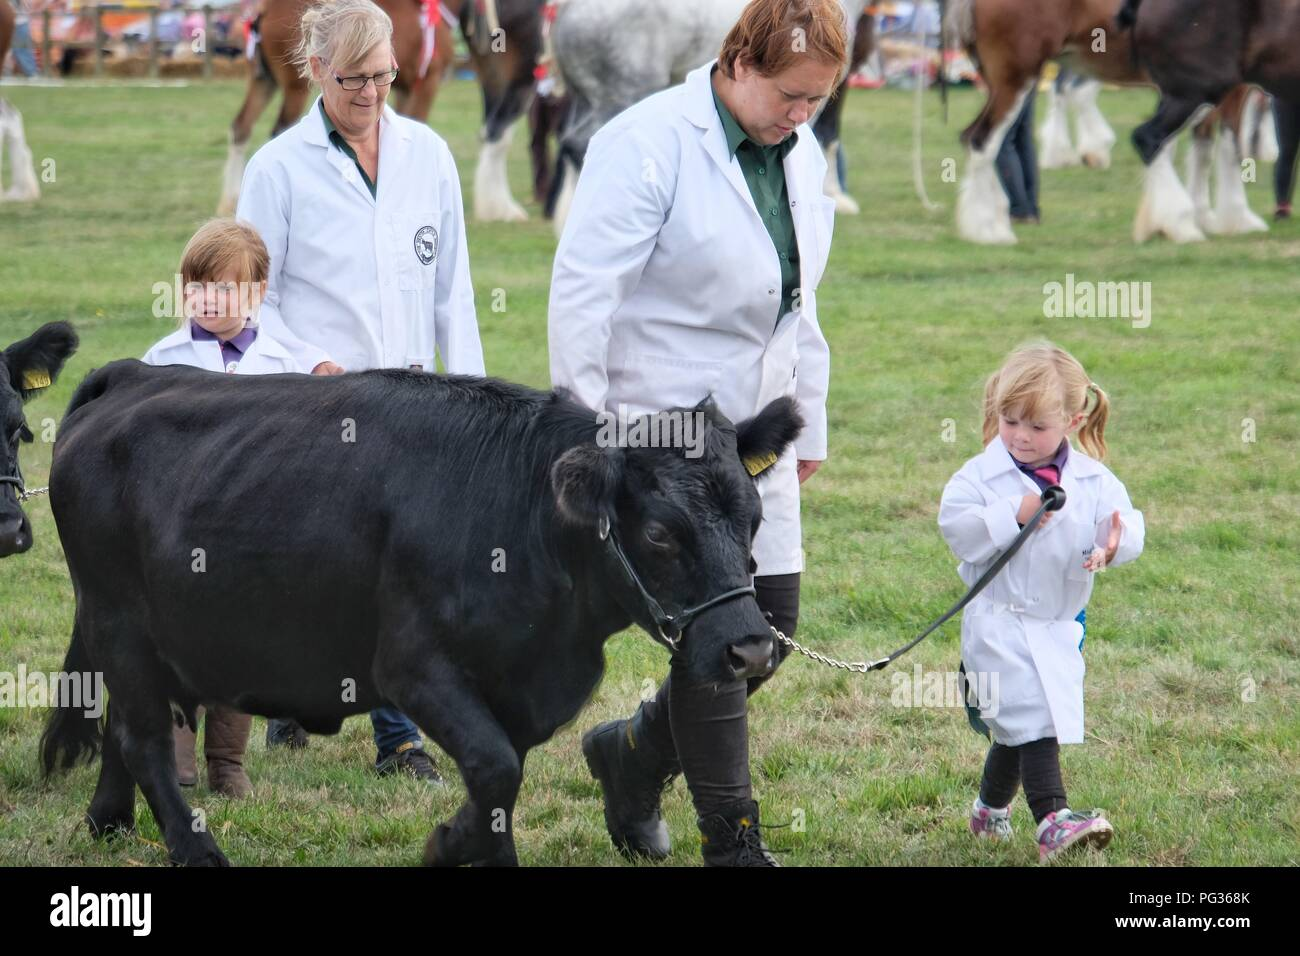 Melplash Show, Bridport, Dorset, UK. 23 August 2018. Prize winning livestock are paraded at the end of the Melplash show in Bridport, Dorset.The one day agricultural show is a showcase and celebration for local farmers, producers, growers and craftspeople and is the South West's premier agricultural exhibition. Credit Tom Corban/Alamy Live News - Stock Image